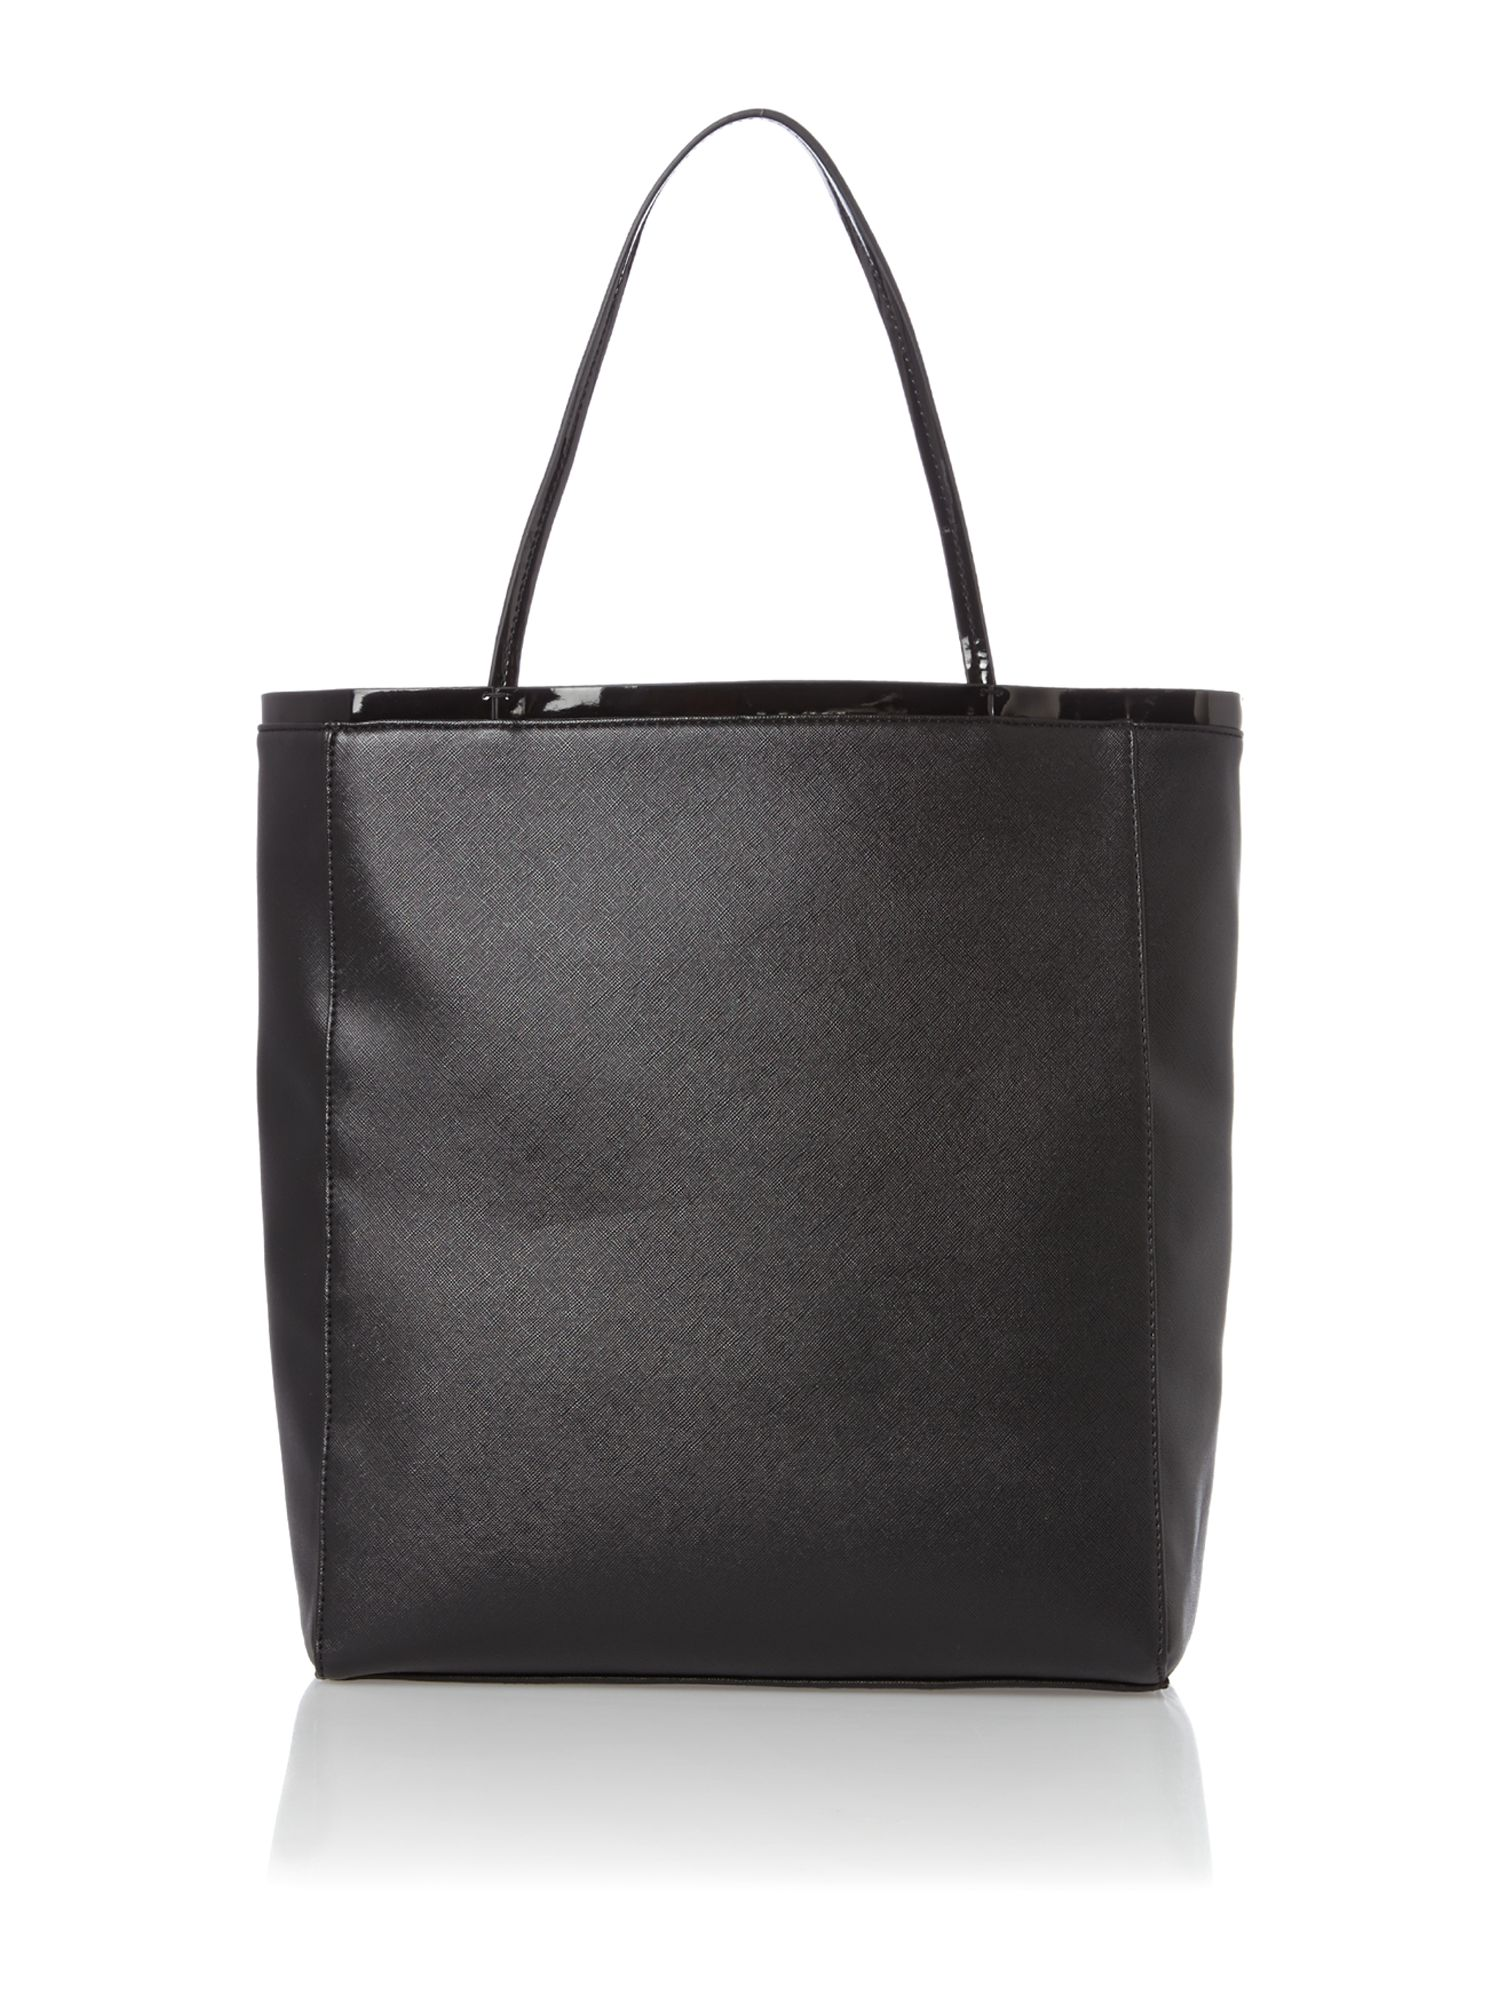 Black large jewel tote bag